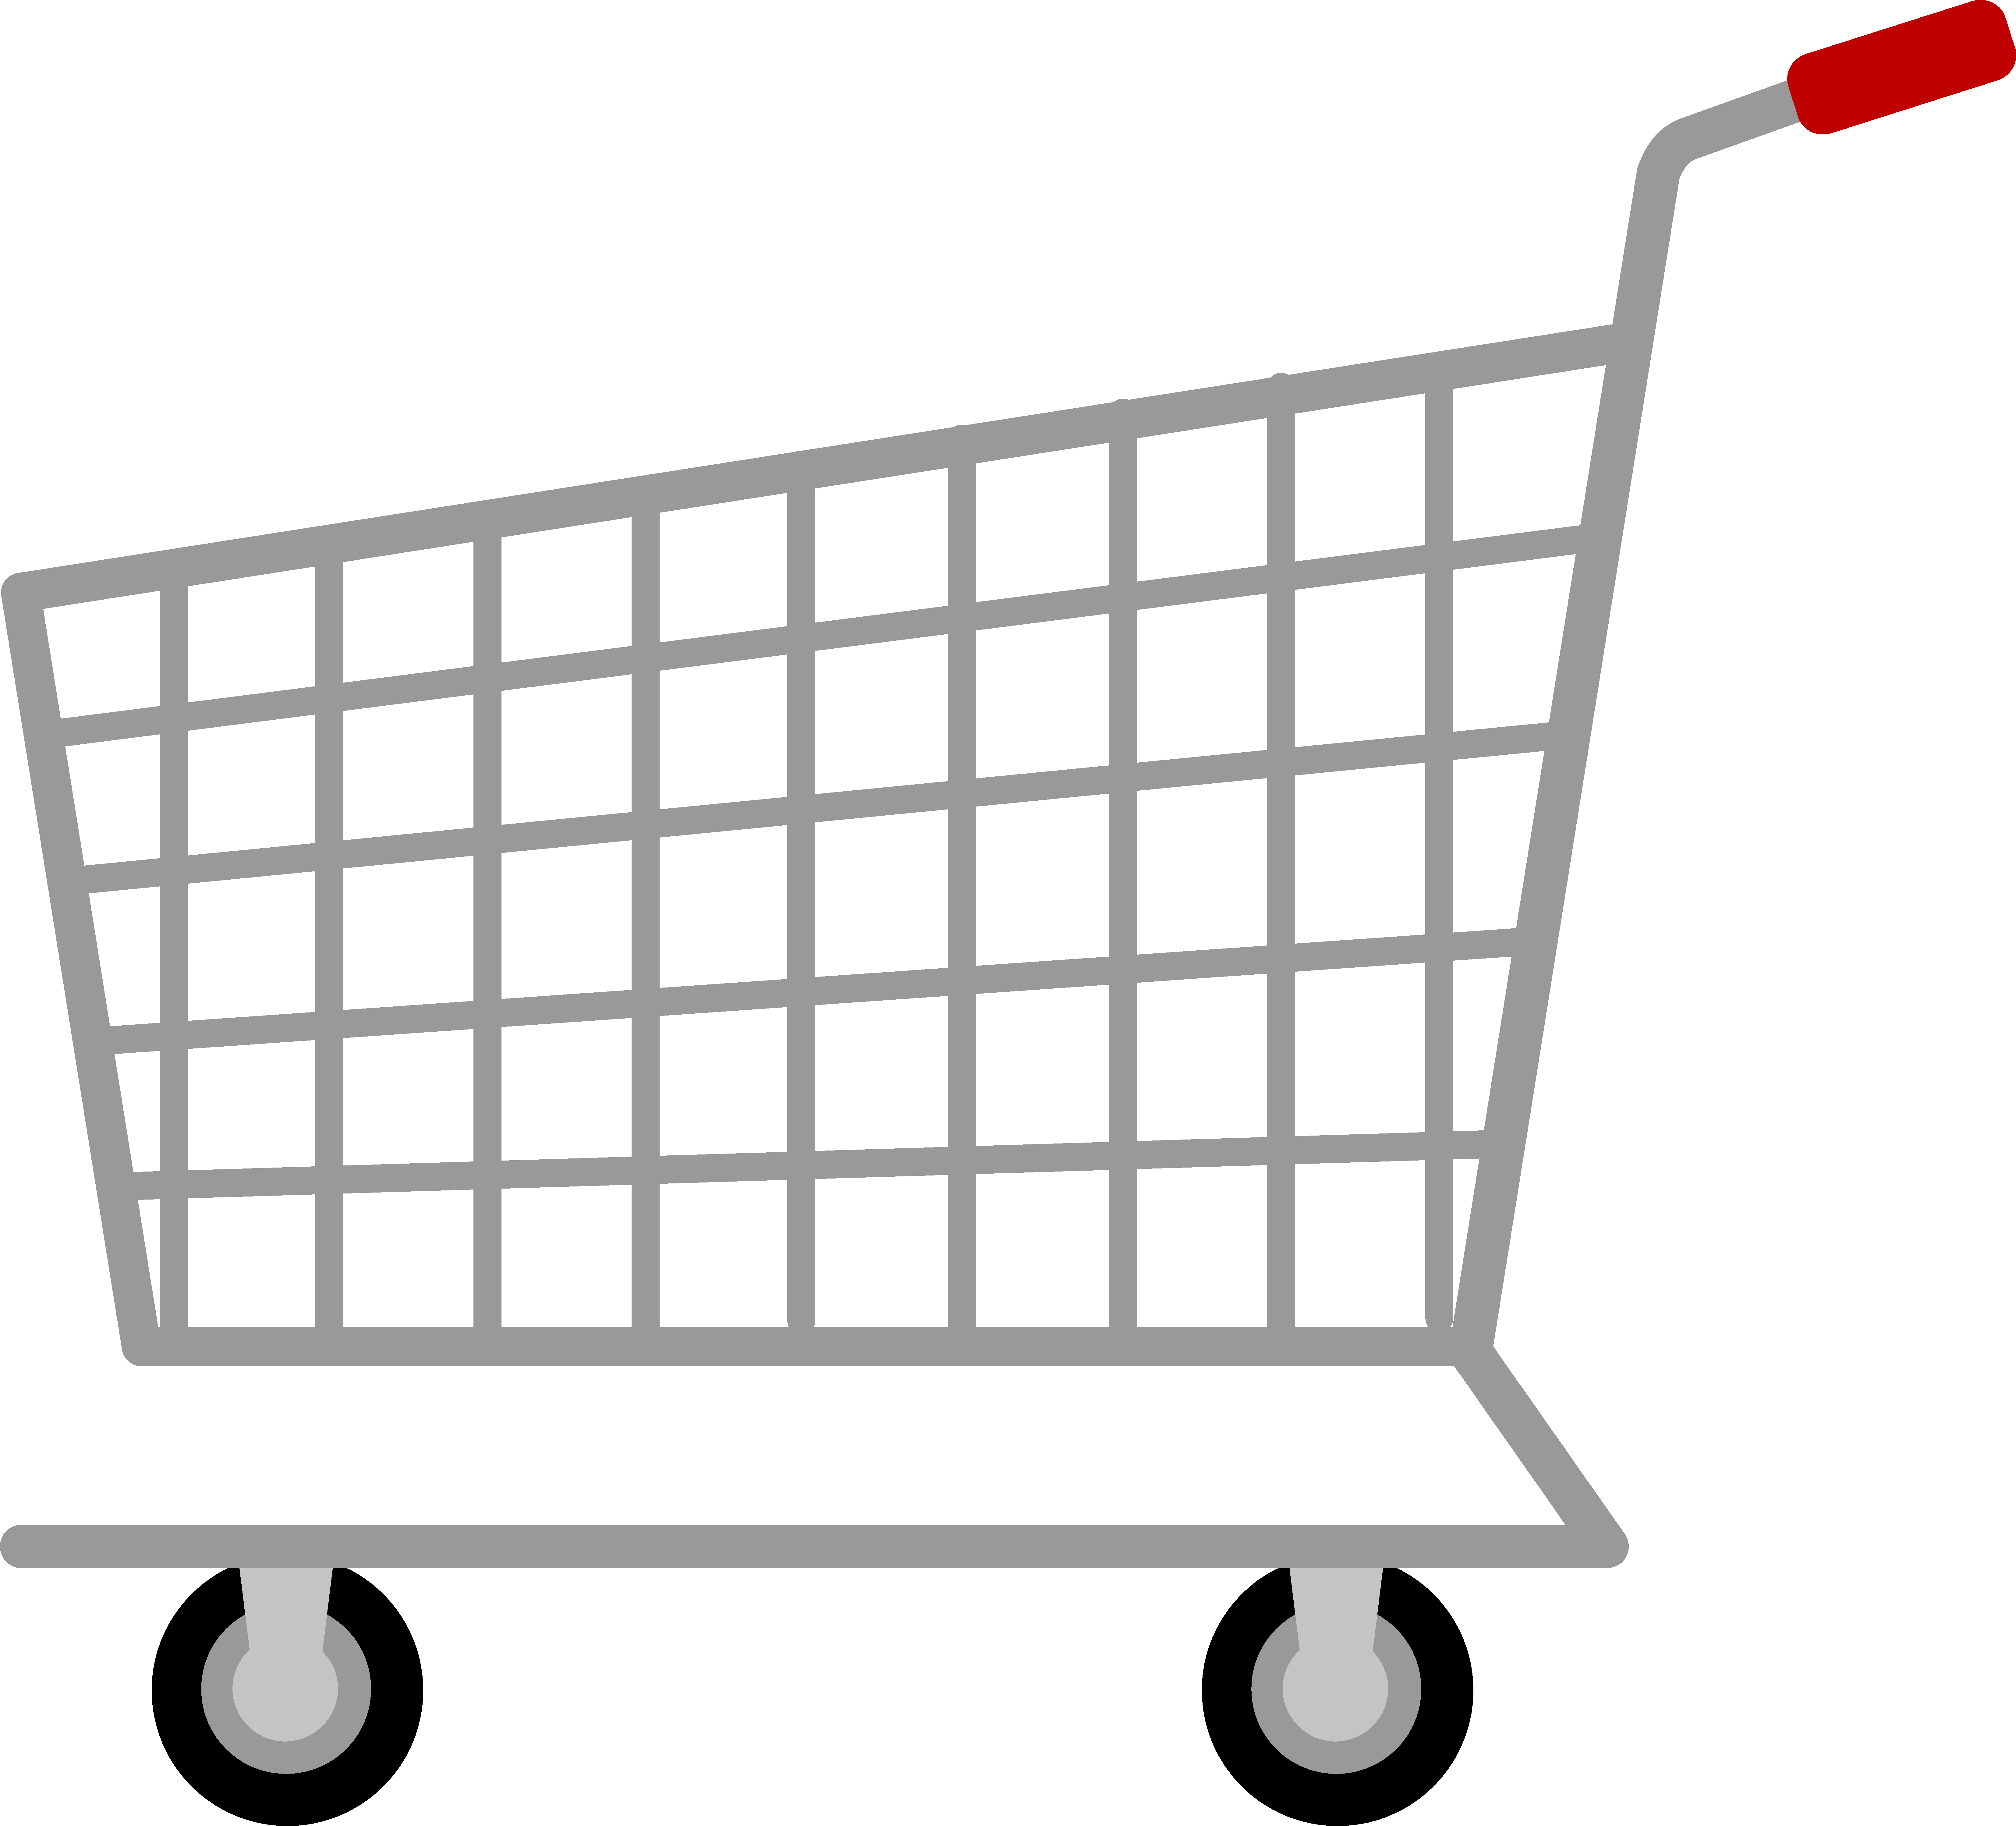 freeuse stock Grocery clipart customer shopping. Cart png images free